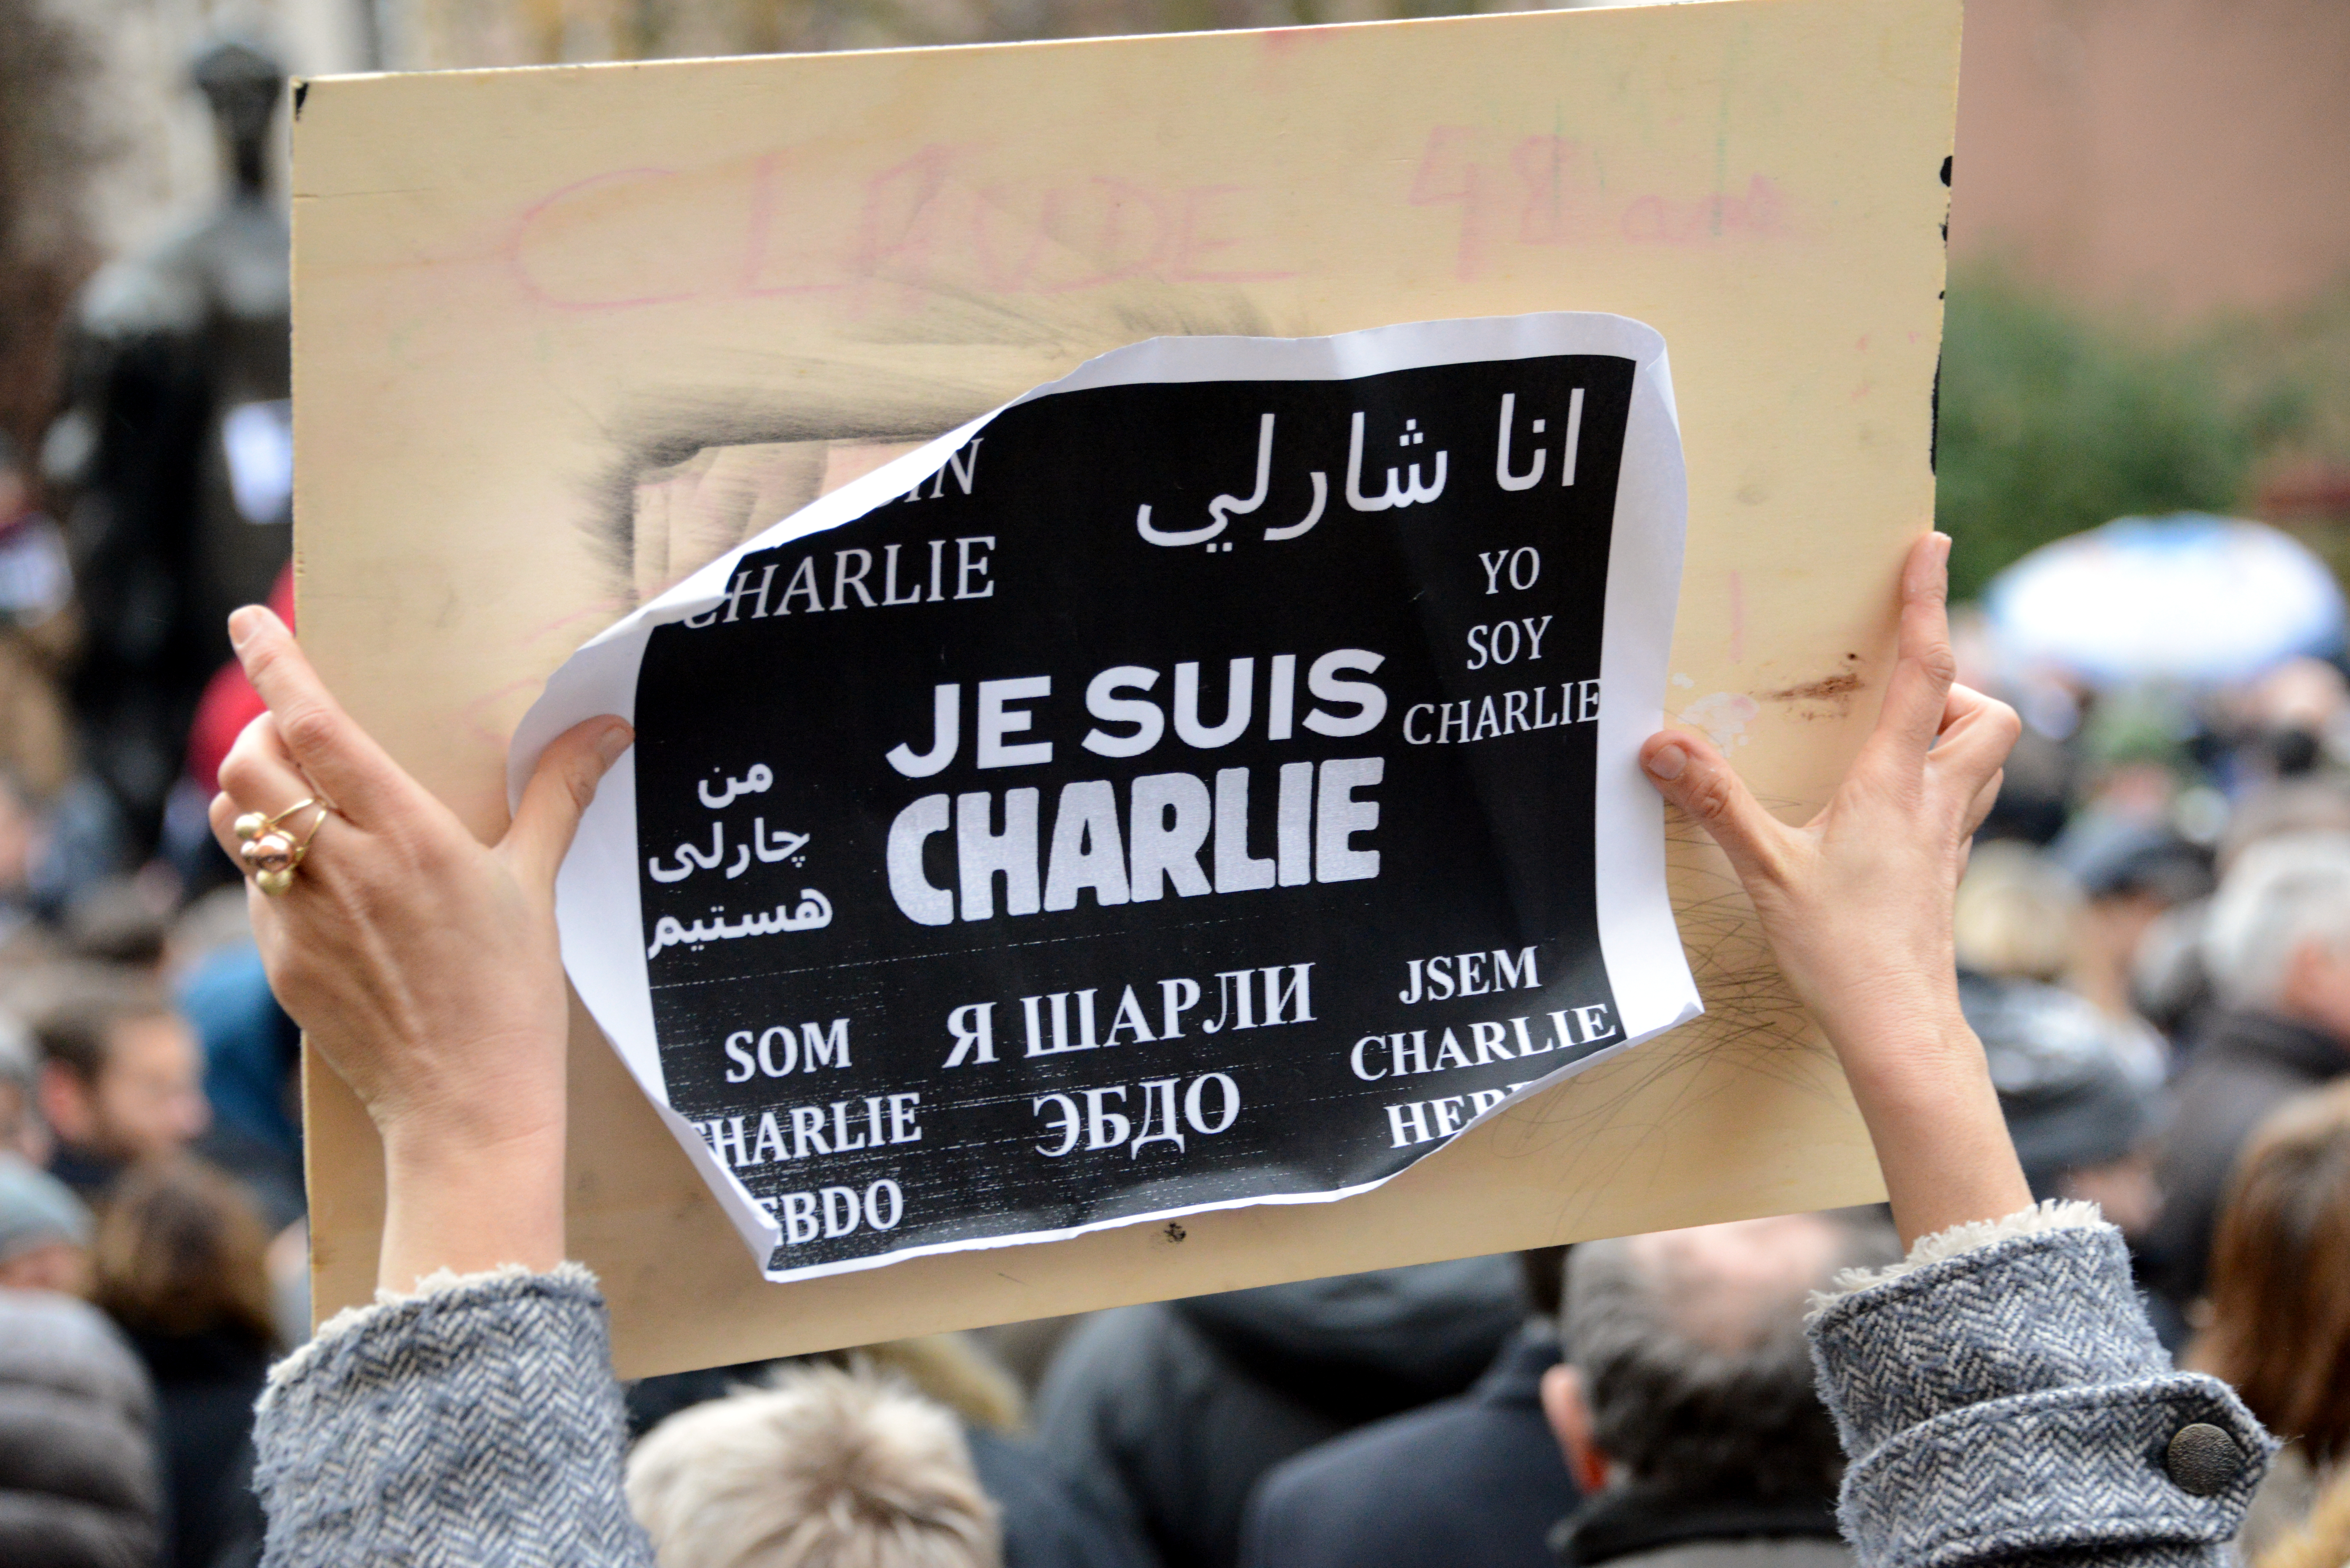 Is Charlie Hebdo 'Islamophobic' for echoing liberal Muslim voices?